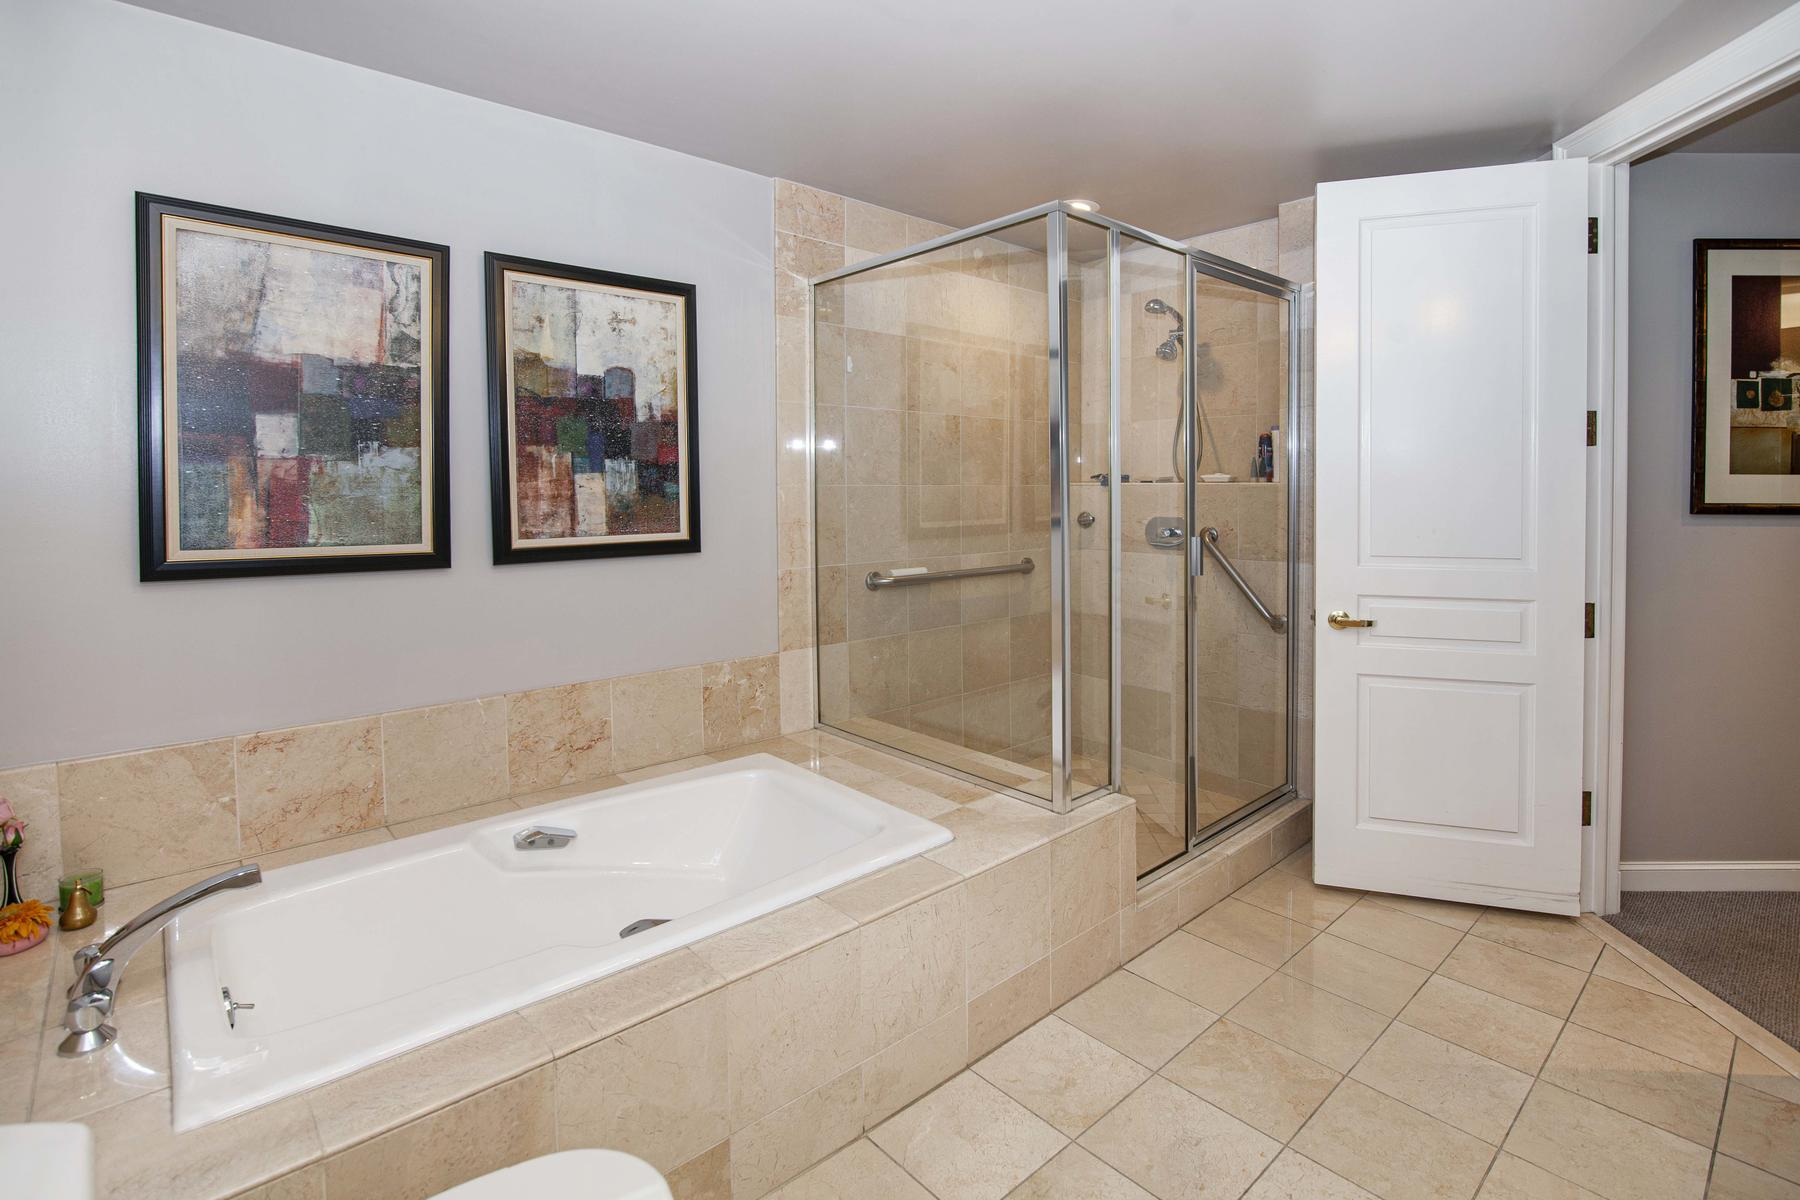 2400 Cherry Creek S Drive 209-033-049-Bathroom-MLS_Size.jpg